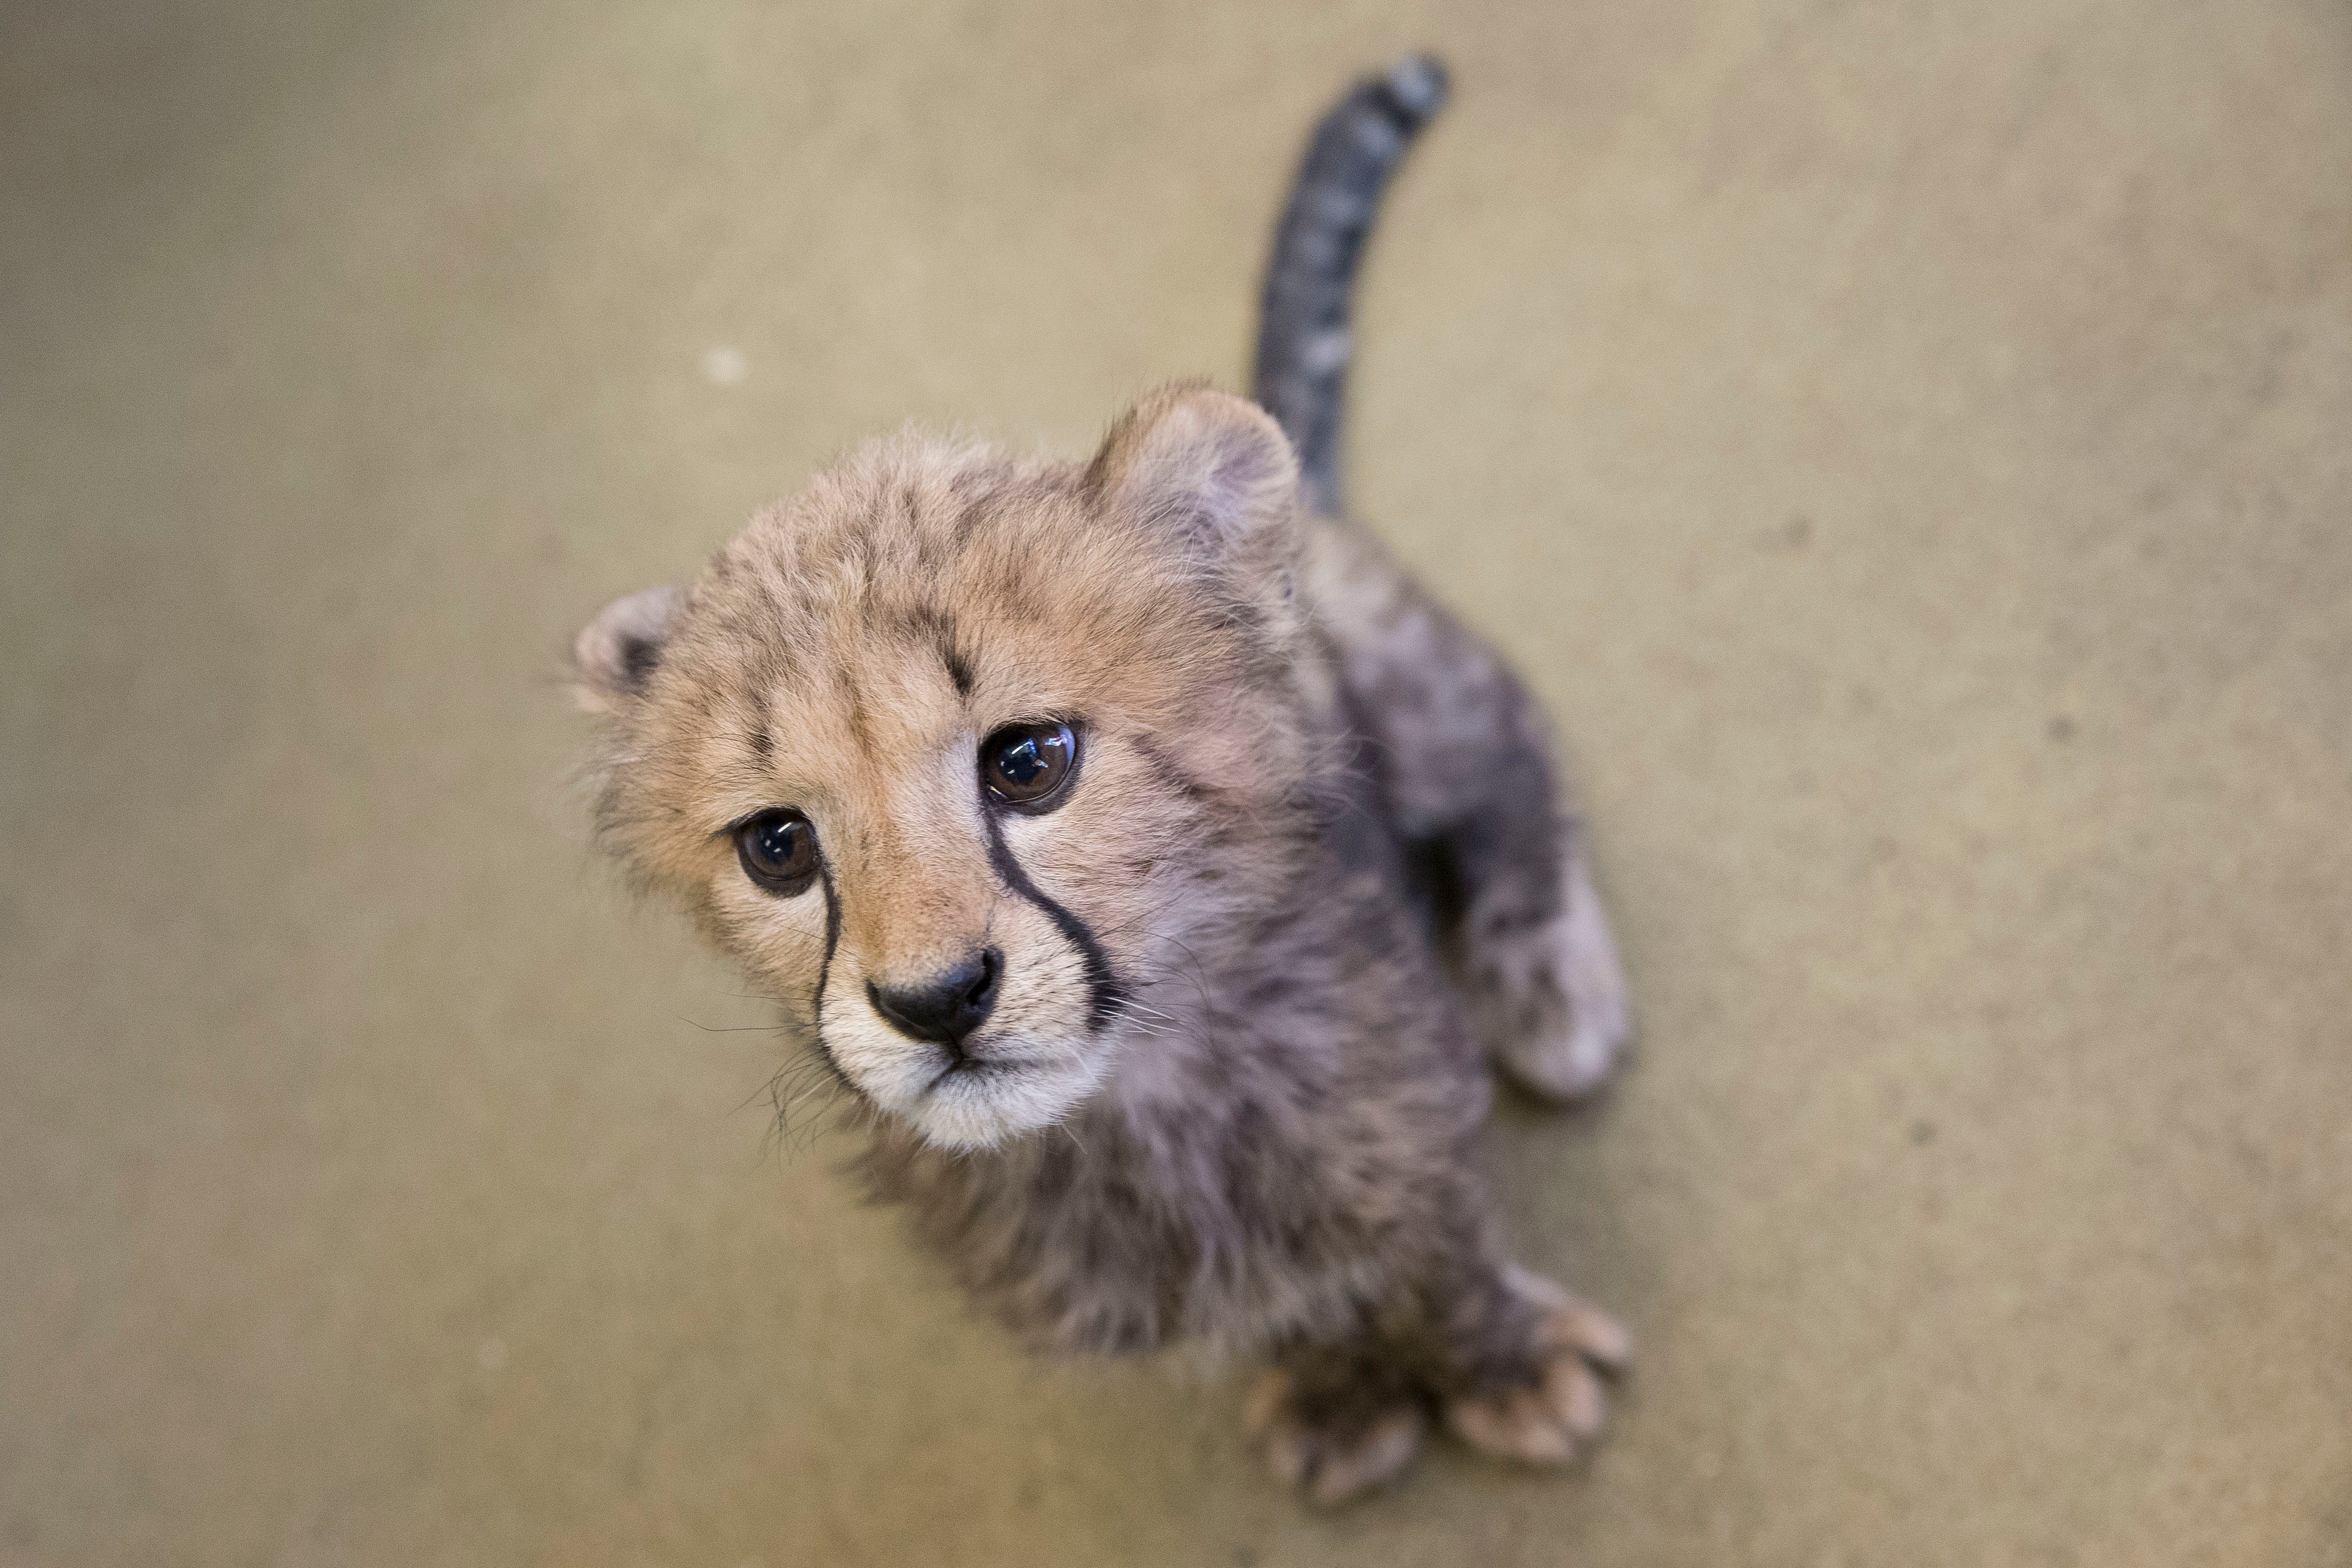 Boy reports stuffed animal missing. Rhode Island police conduct 'search and rescue,' send him a new cheetah toy | Burlington Free Press